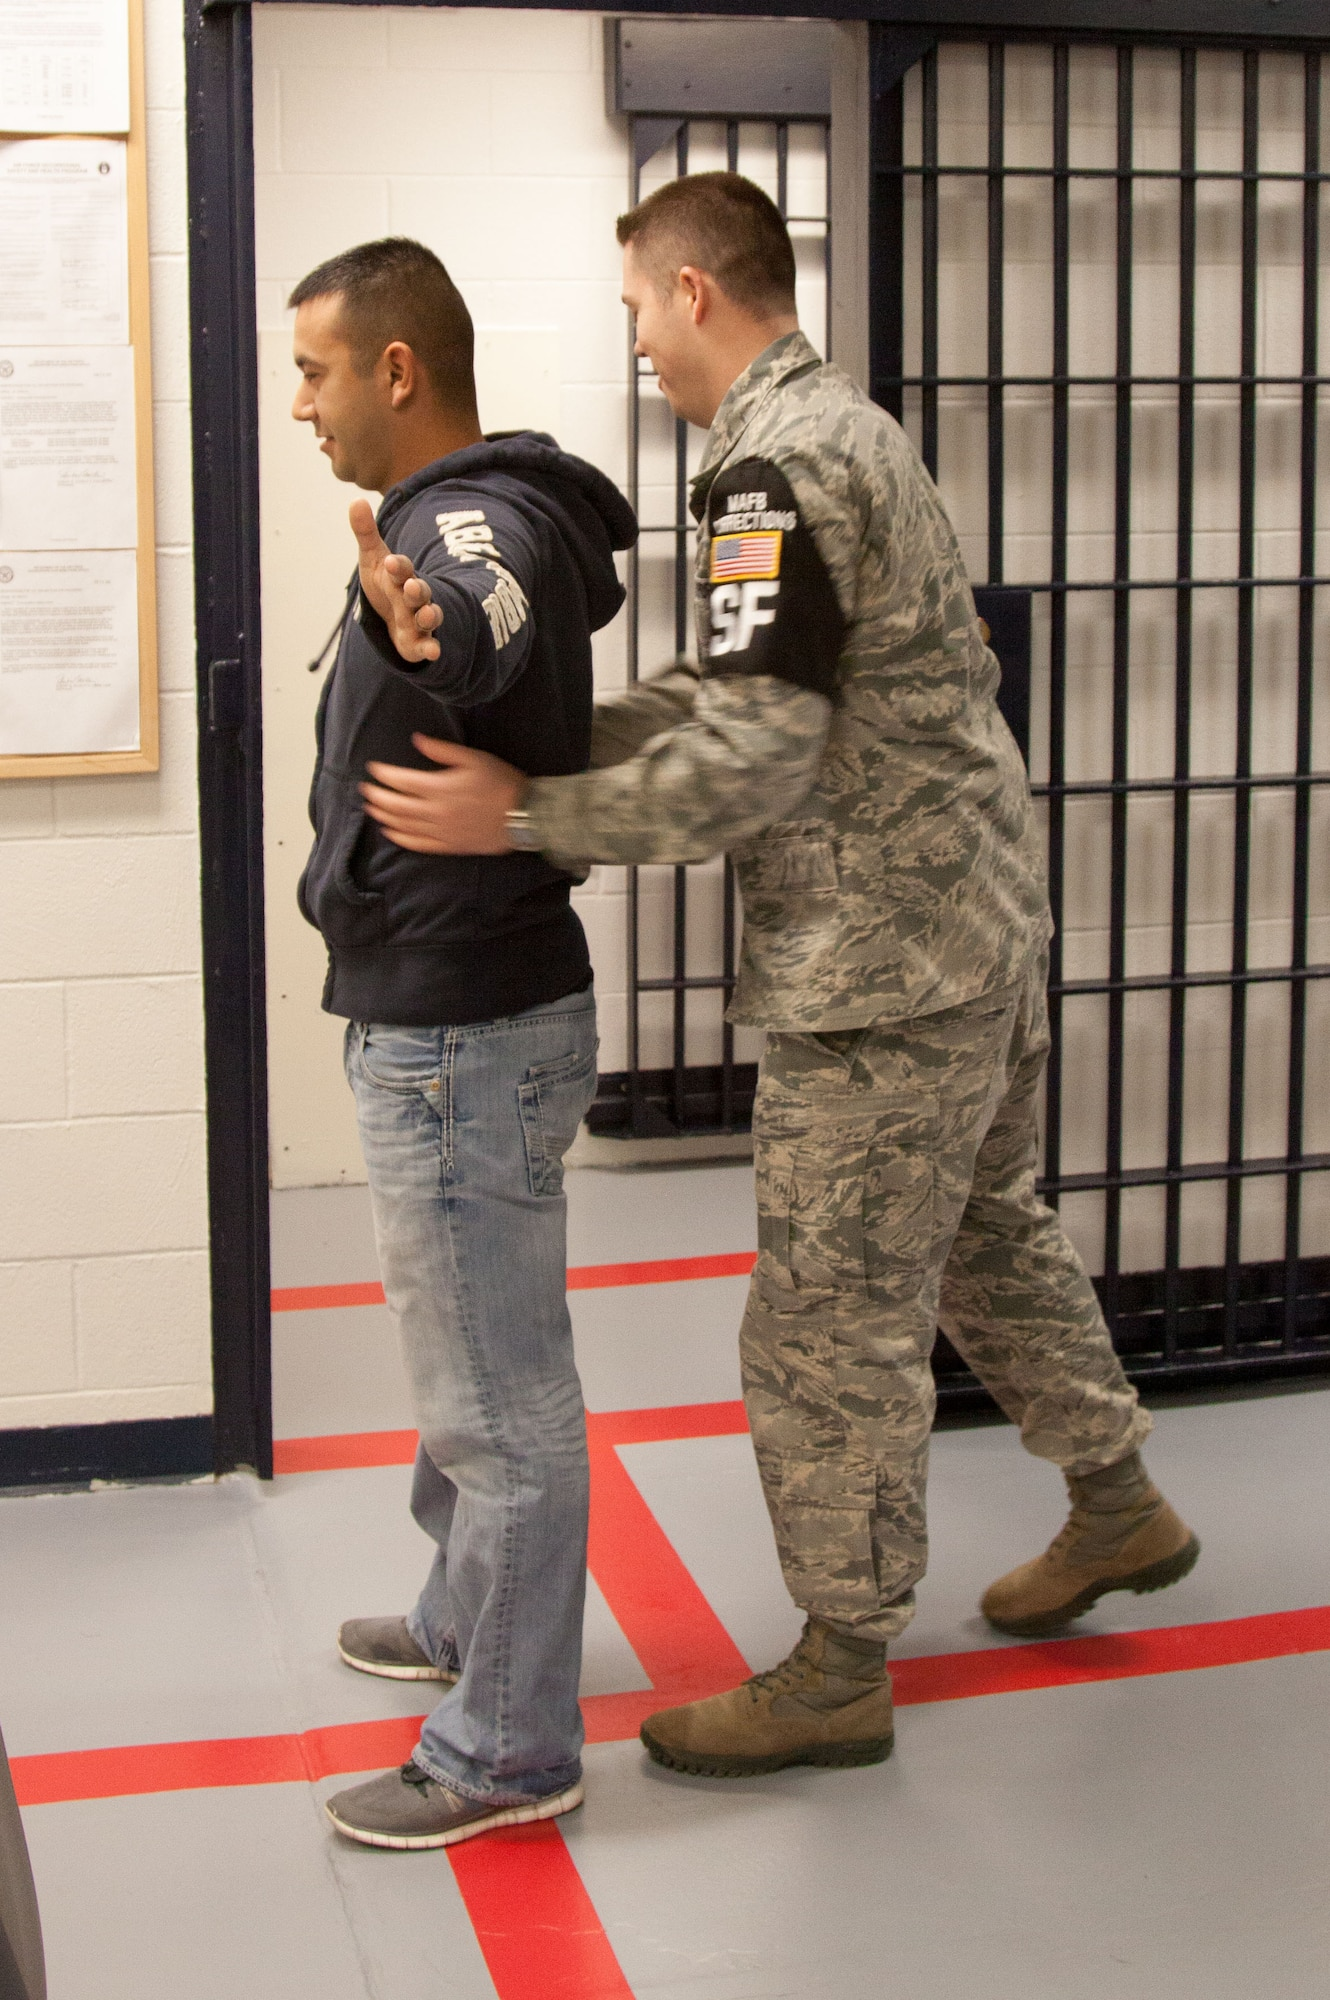 Staff Sgt. Jaime Gutierrez, a 341st Security Forces Support Squadron trainer (left), simulates an inmate during inprocessing as Tech. Sgt. Earl Bagwell, the 341st Security Forces Squadron NCO in charge of investigations, pats him down at Malmstrom Air Force Base's confinement center. Reoccurring training sessions for confinement supervisors provide the skills necessary for them to complete their mission safely and efficiently. (Courtesy photo)